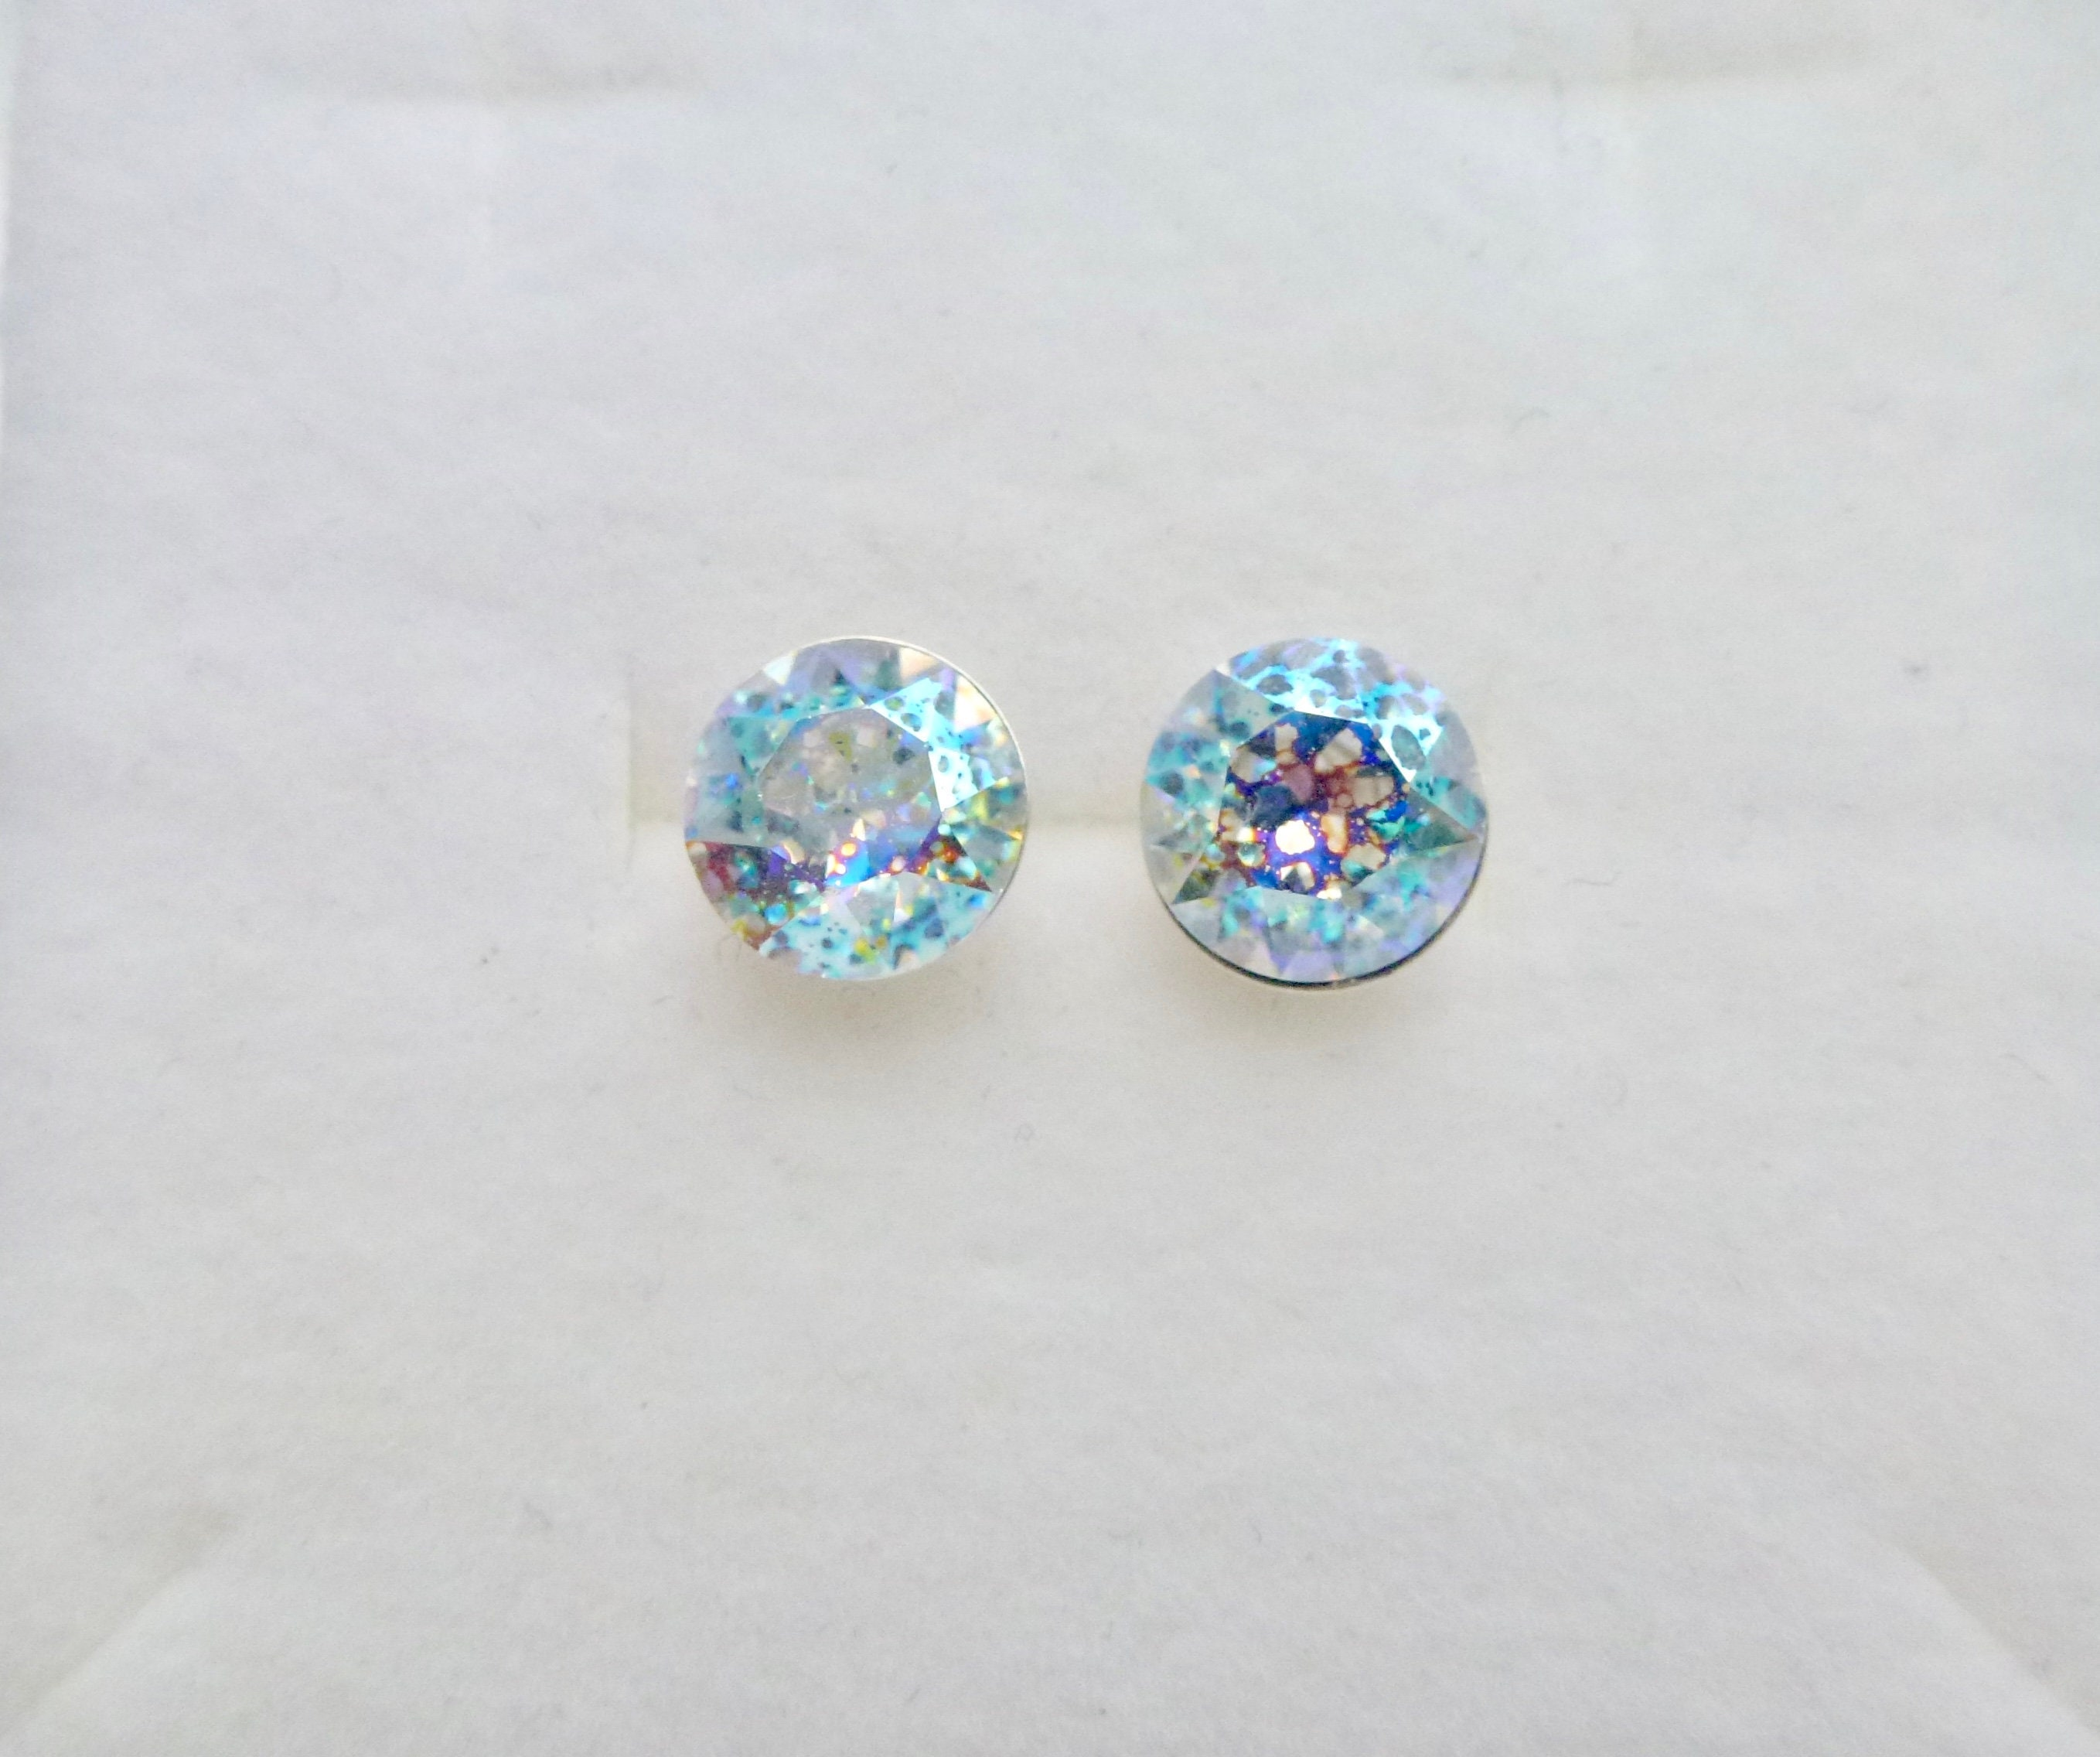 a836252f91f4 Sterling silver crystal white patina swarovski crystal round etsy jpg  2716x2272 Crystal white patina